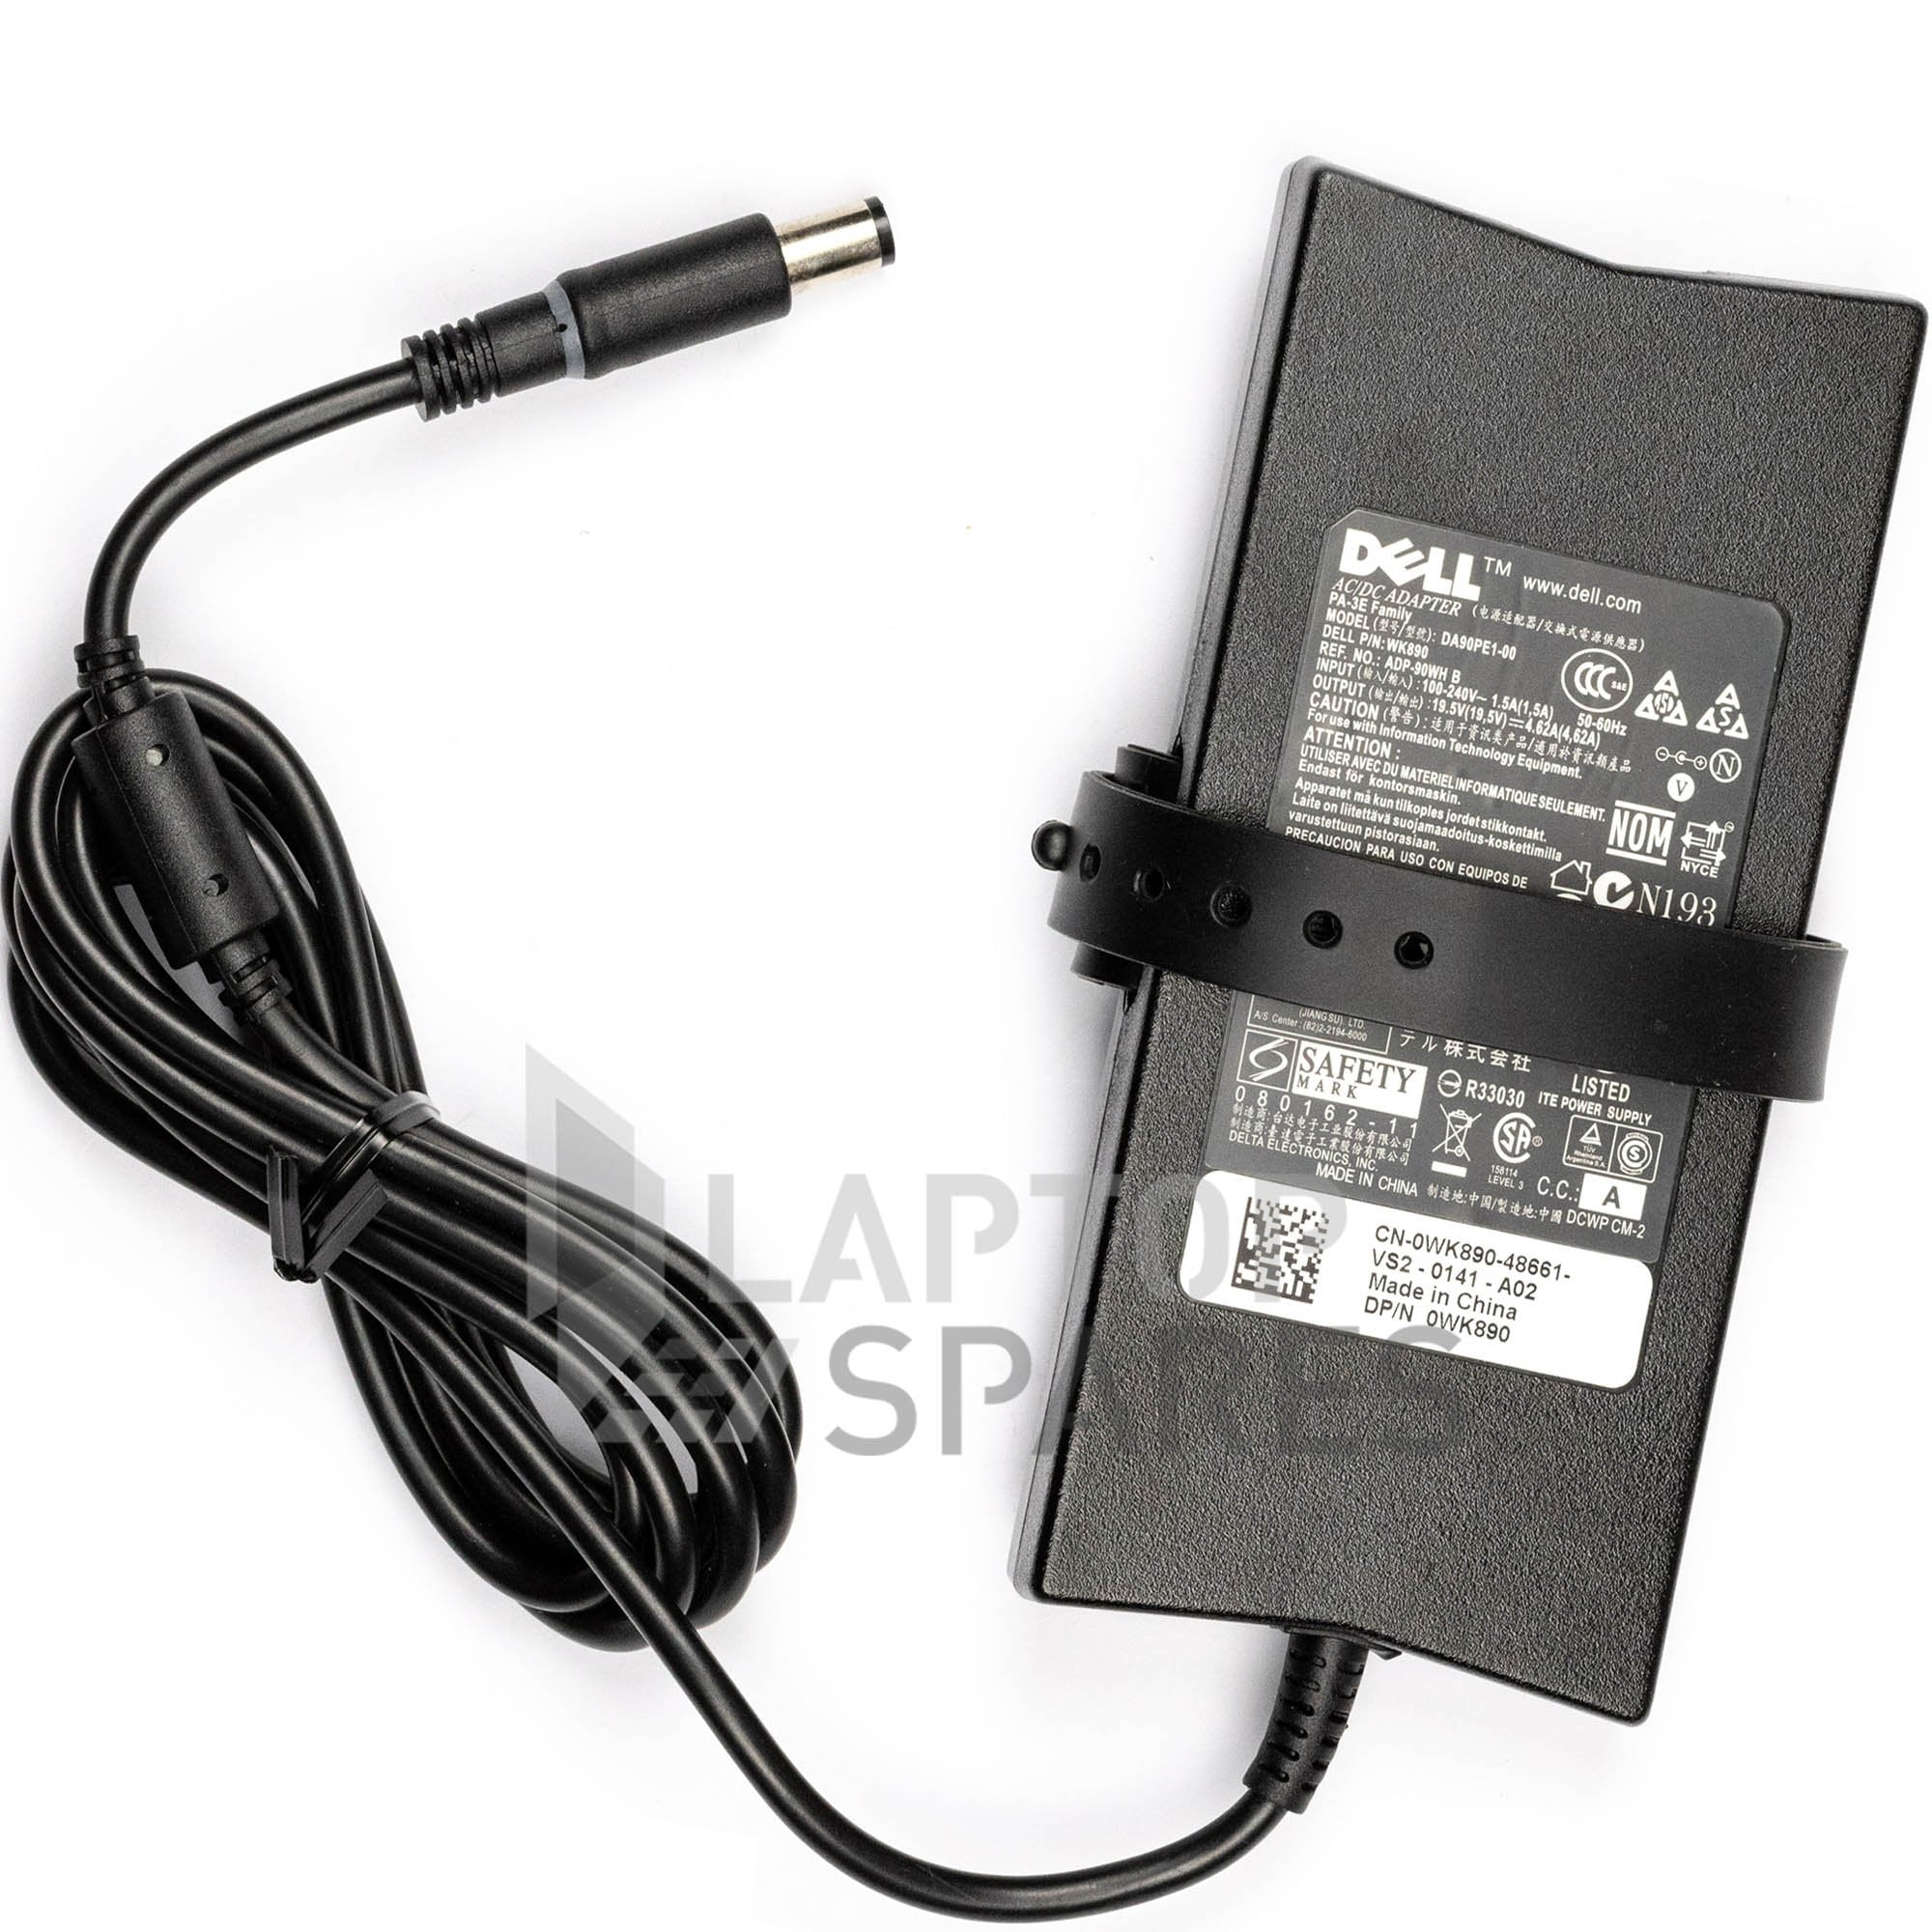 Dell Inspiron One 2310 2320 Laptop Slim AC Adapter Charger